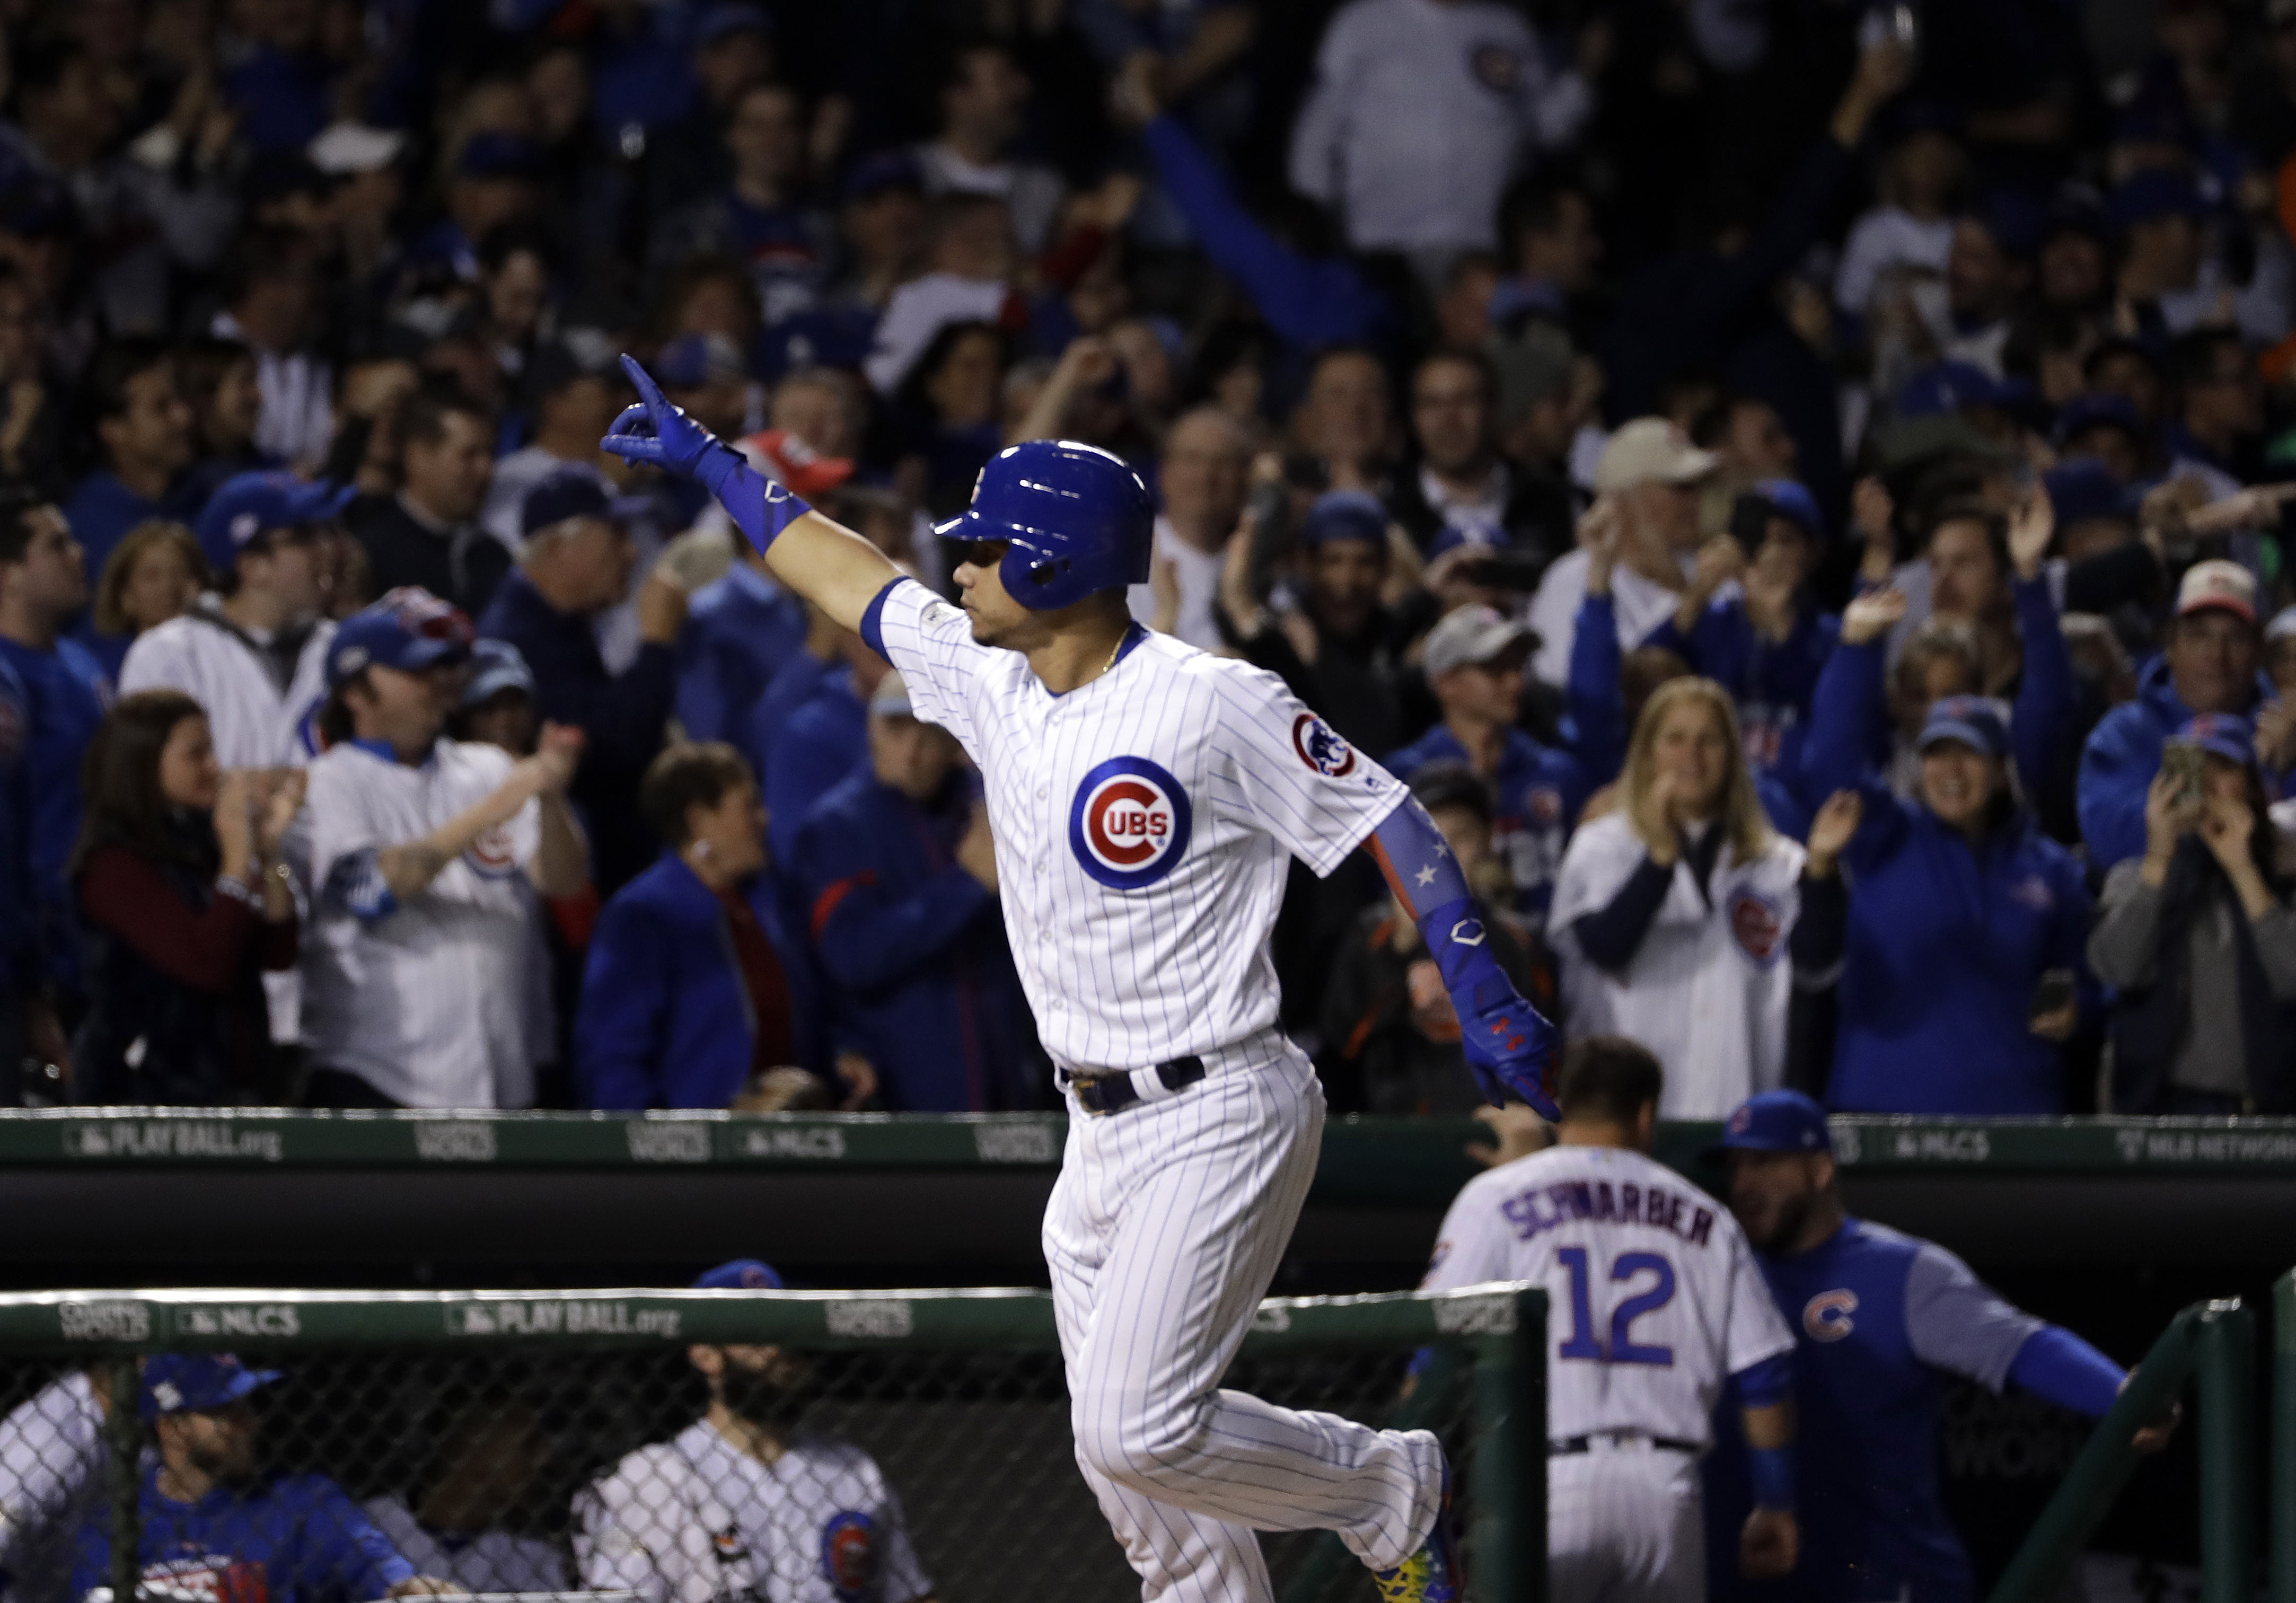 NLCS Game 4: Willson Contreras crushes 491-foot home run off Wrigley video board